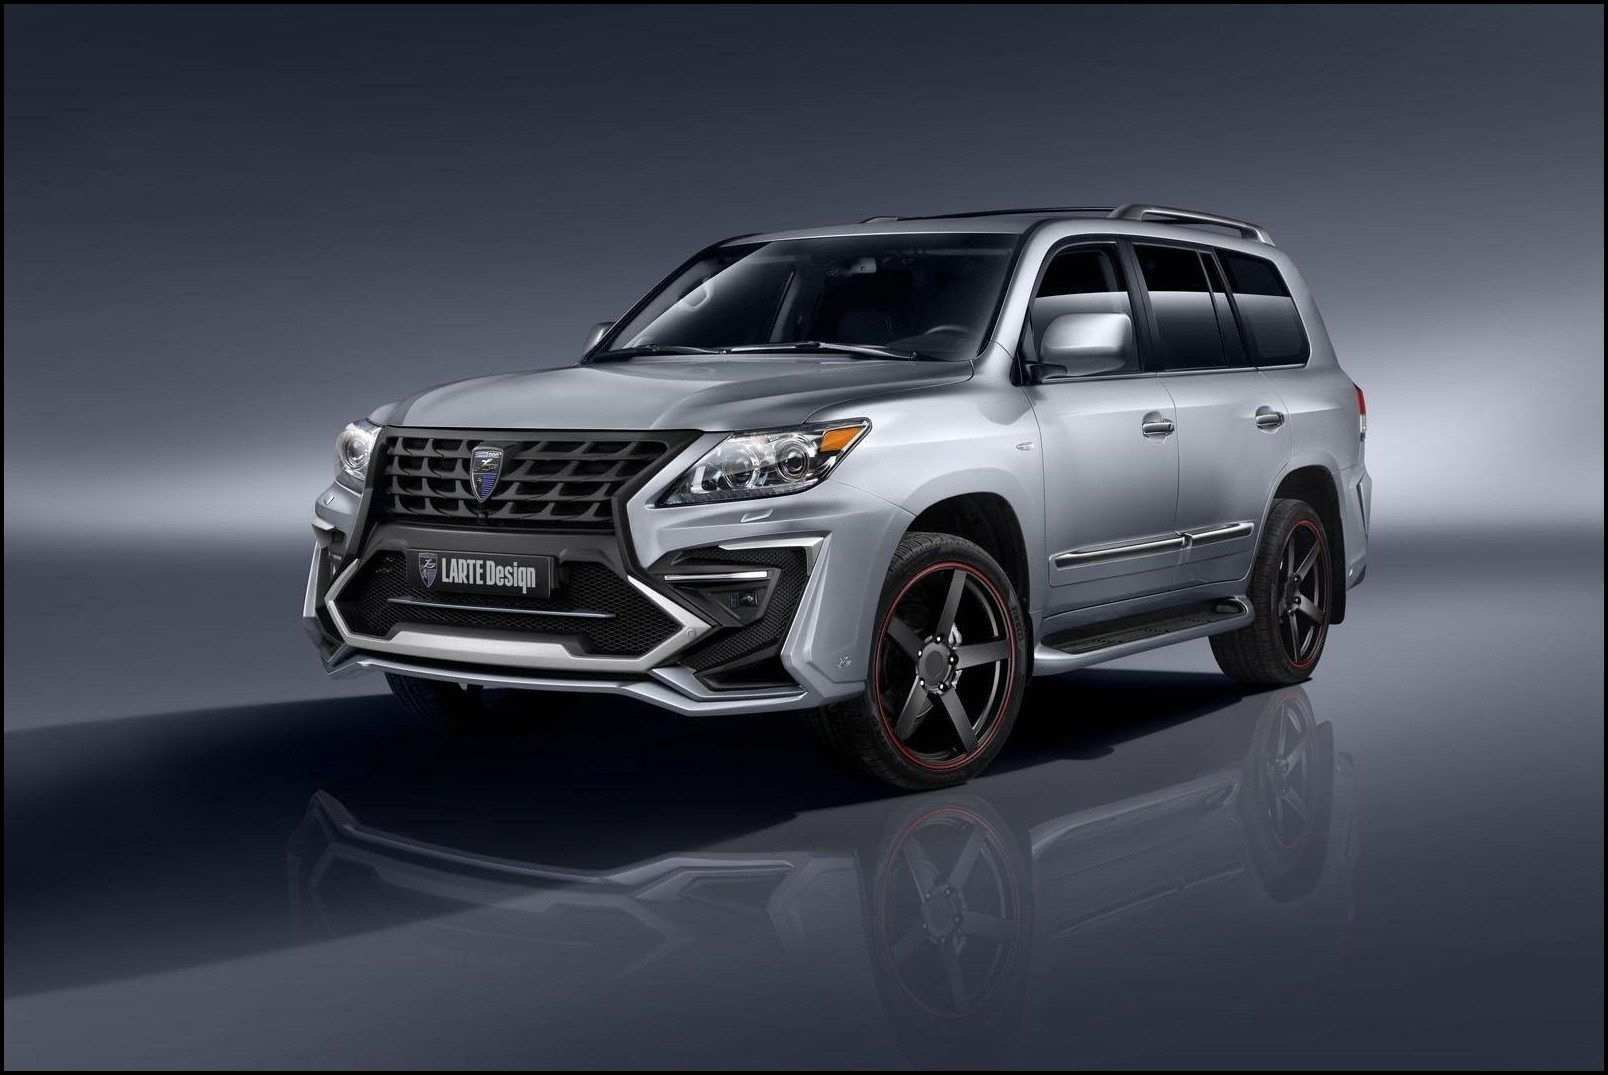 84 All New Lexus Gx 2019 Spy Release Date And Concept